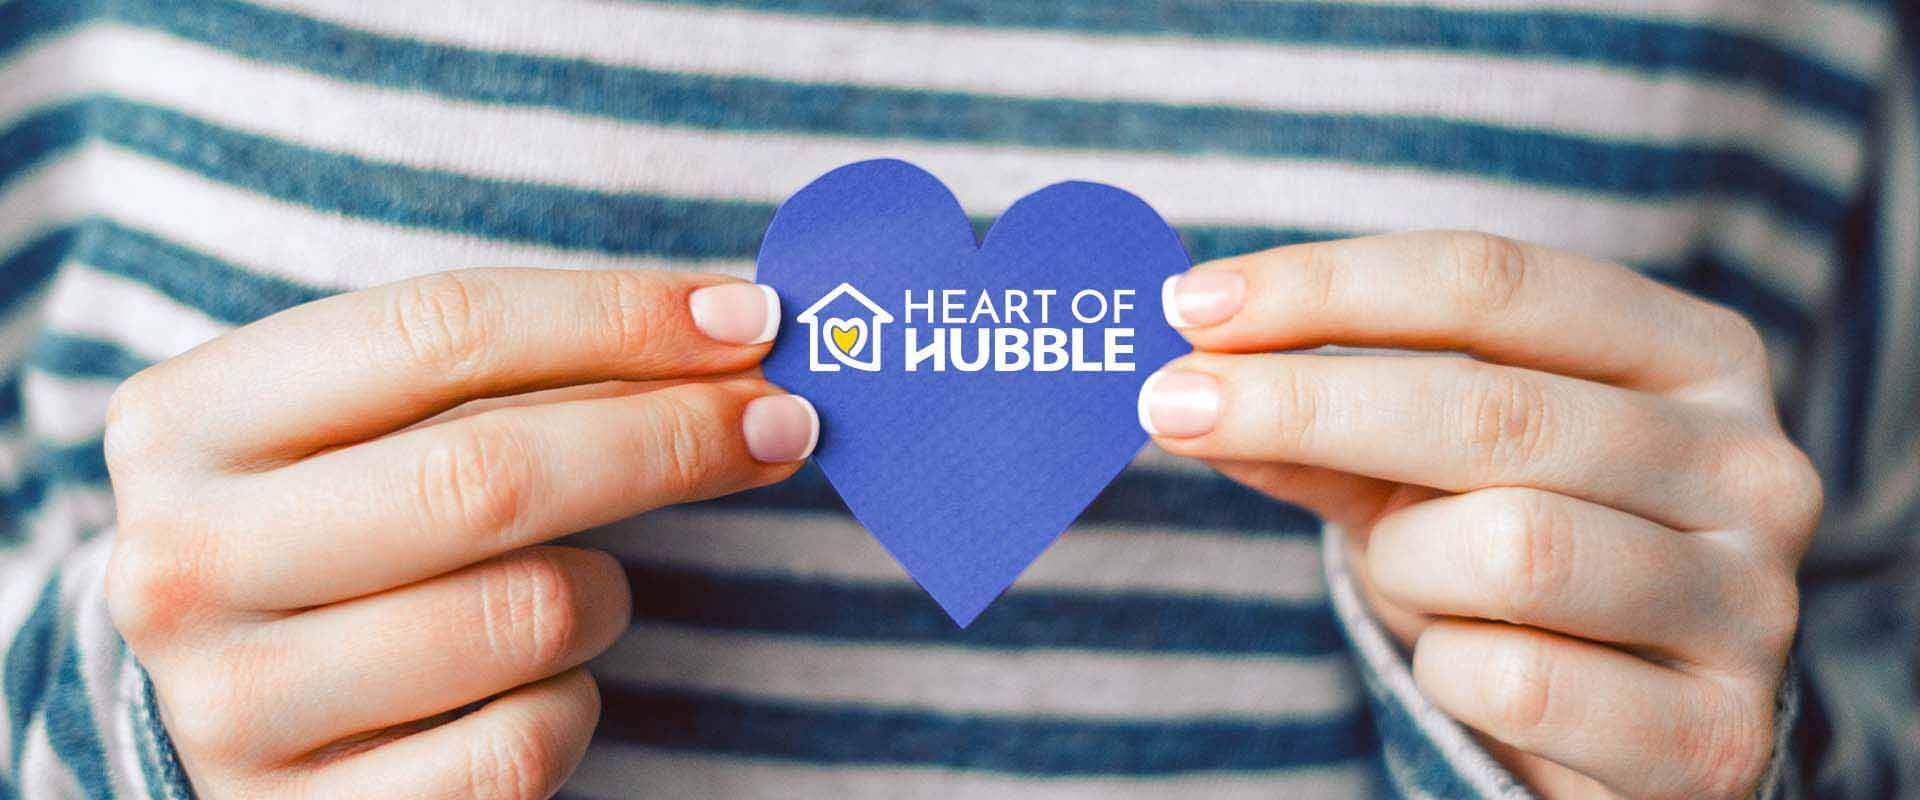 Hubble-Homes-Gives-Back-Heart-of-Hubble.jpg